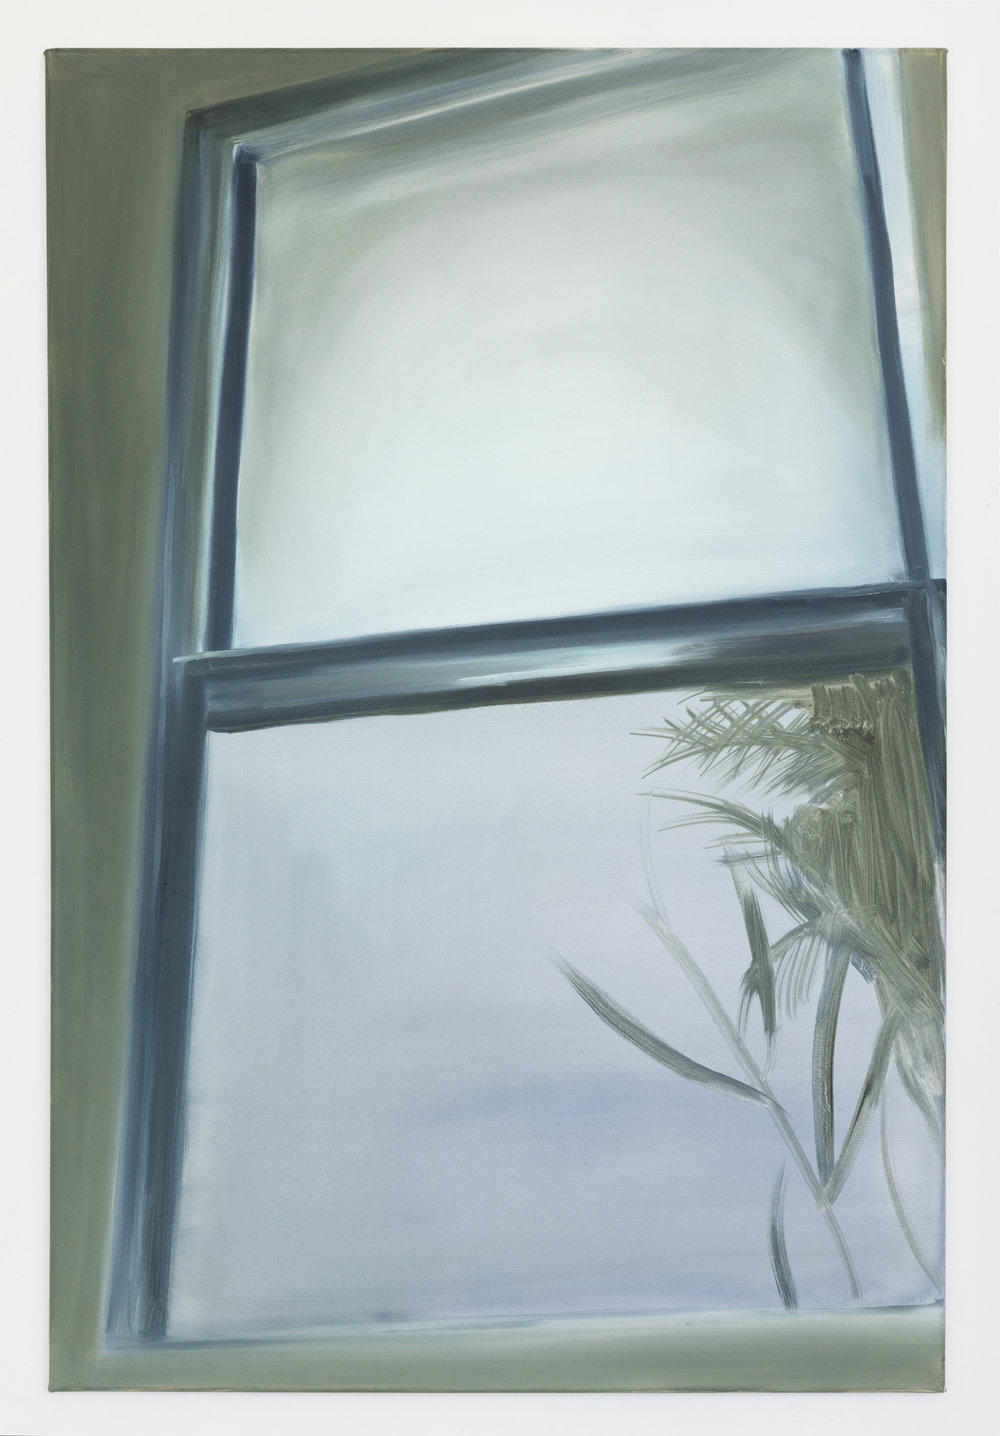 Aglae Bassens, Palm Window